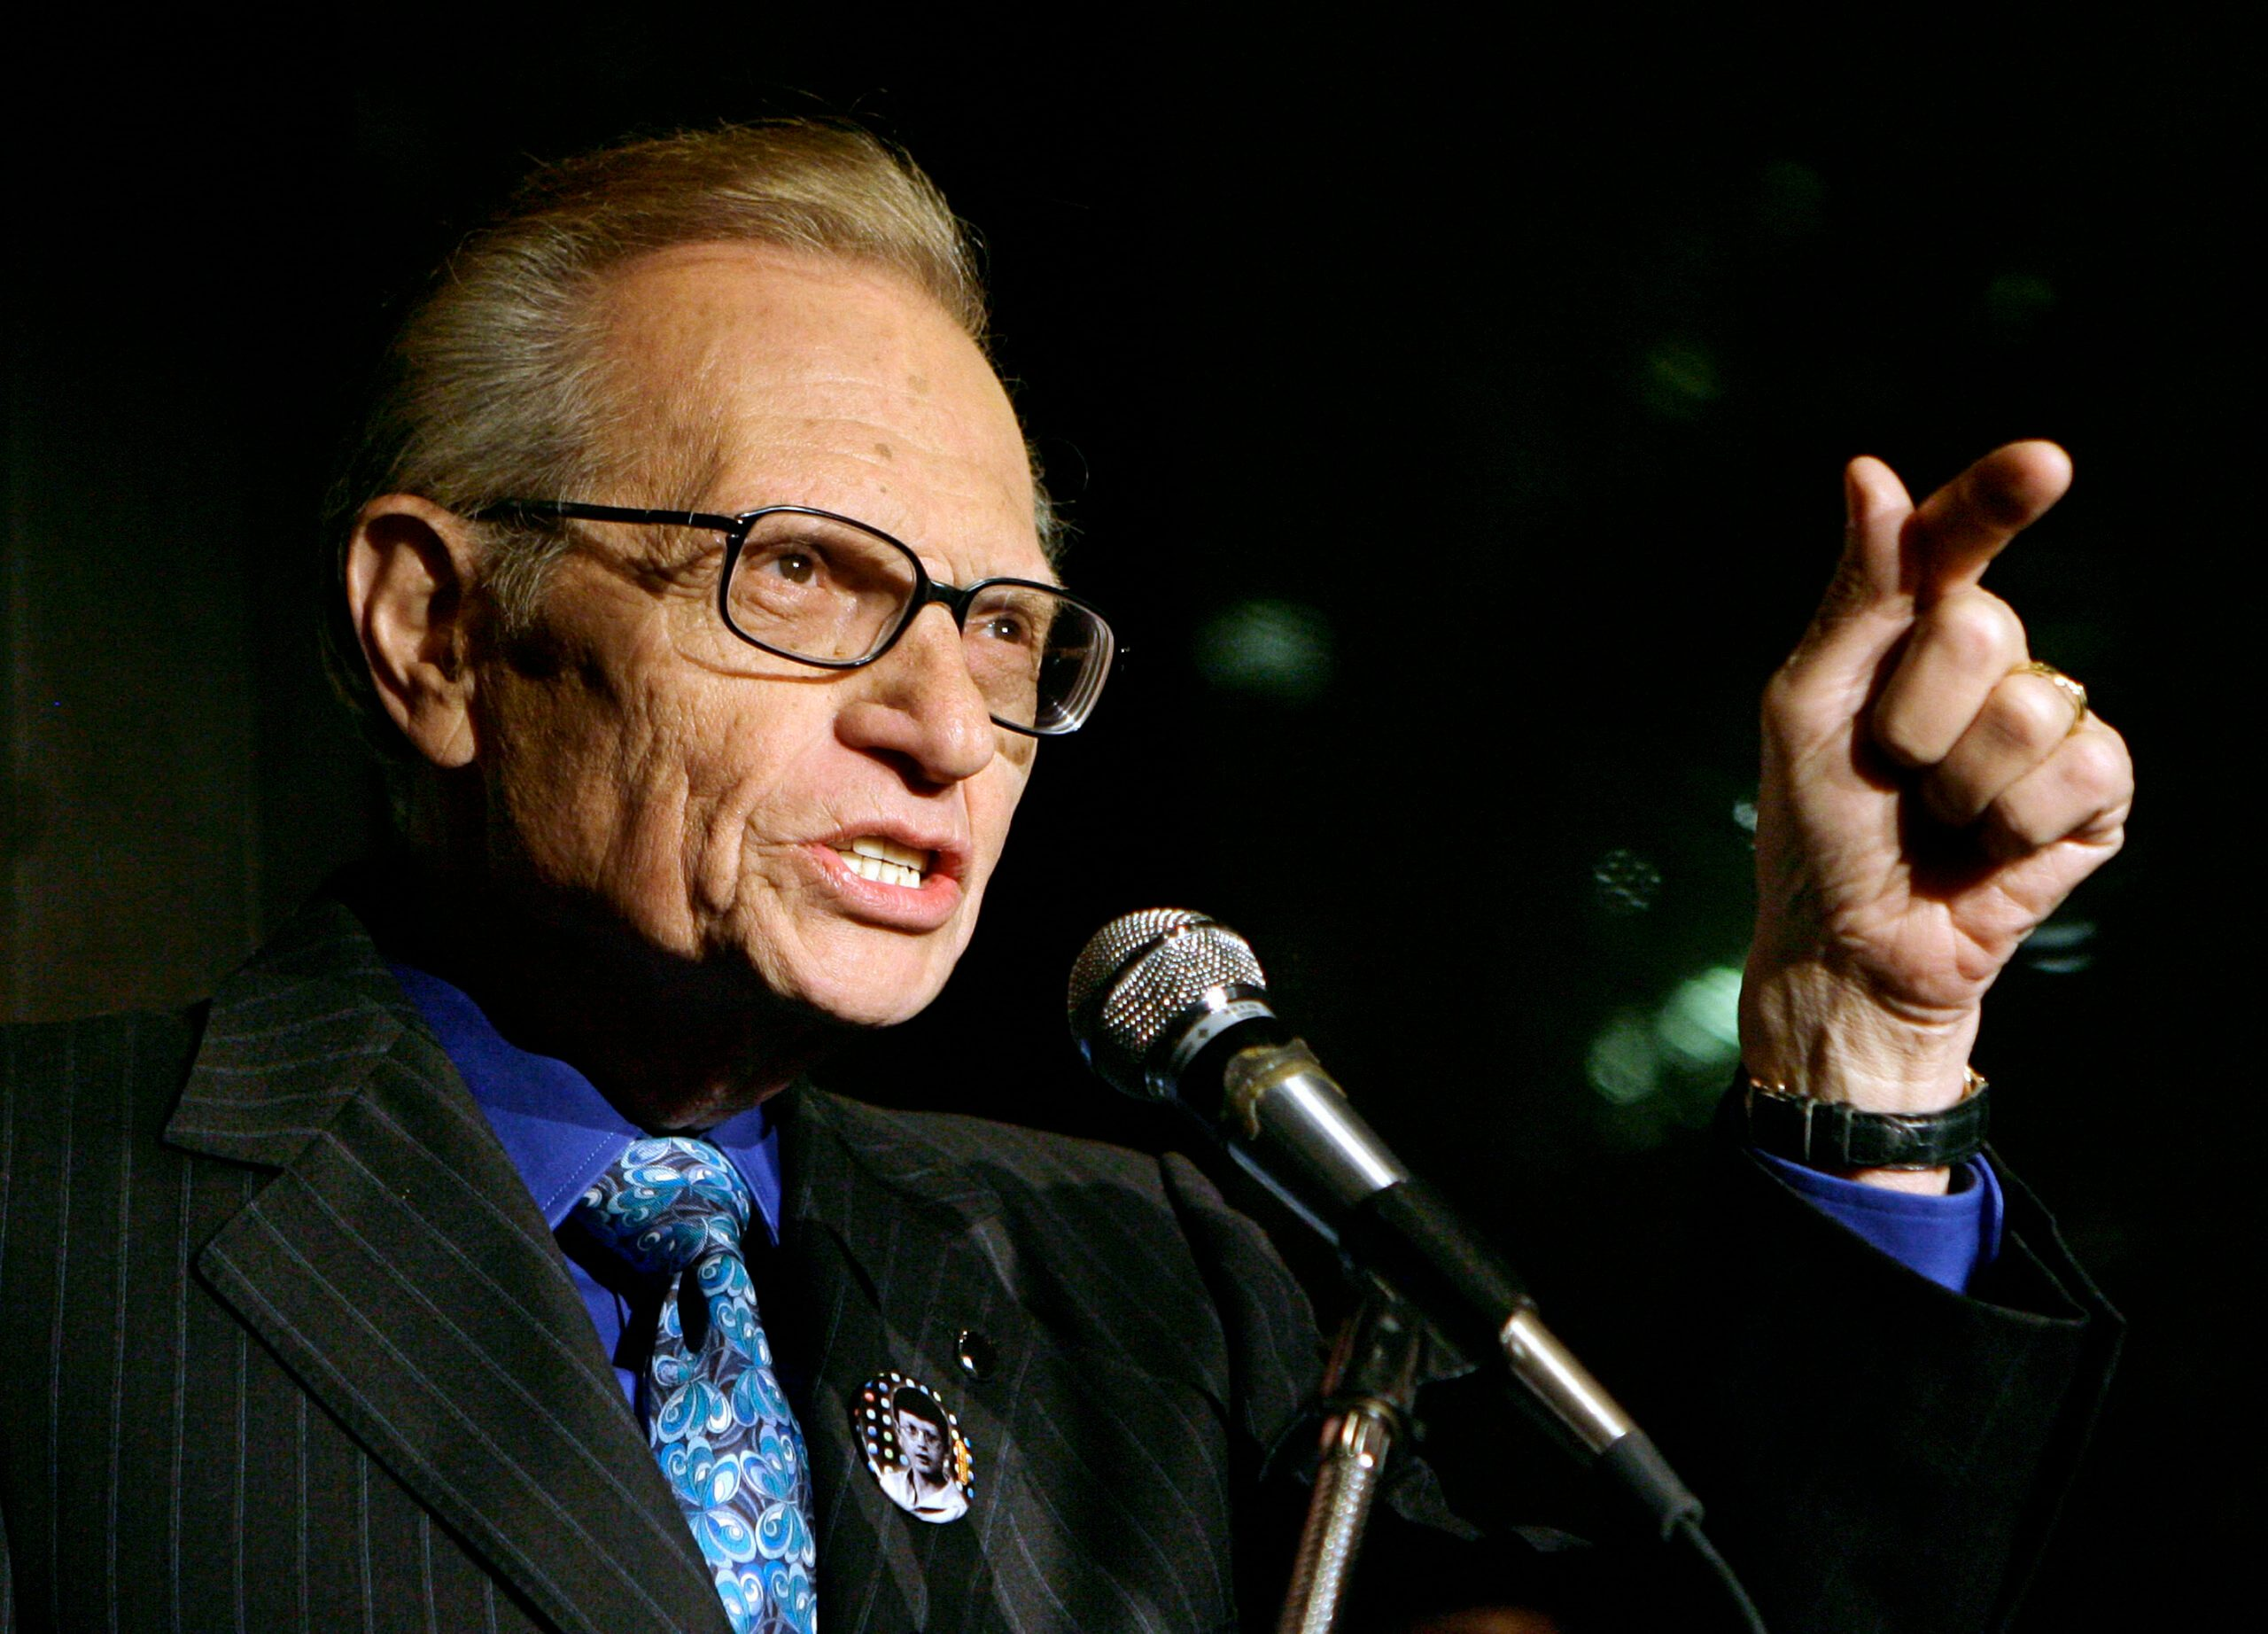 Larry King, Broadcasting Giant for Half-Century, Dies at 87 - snopes